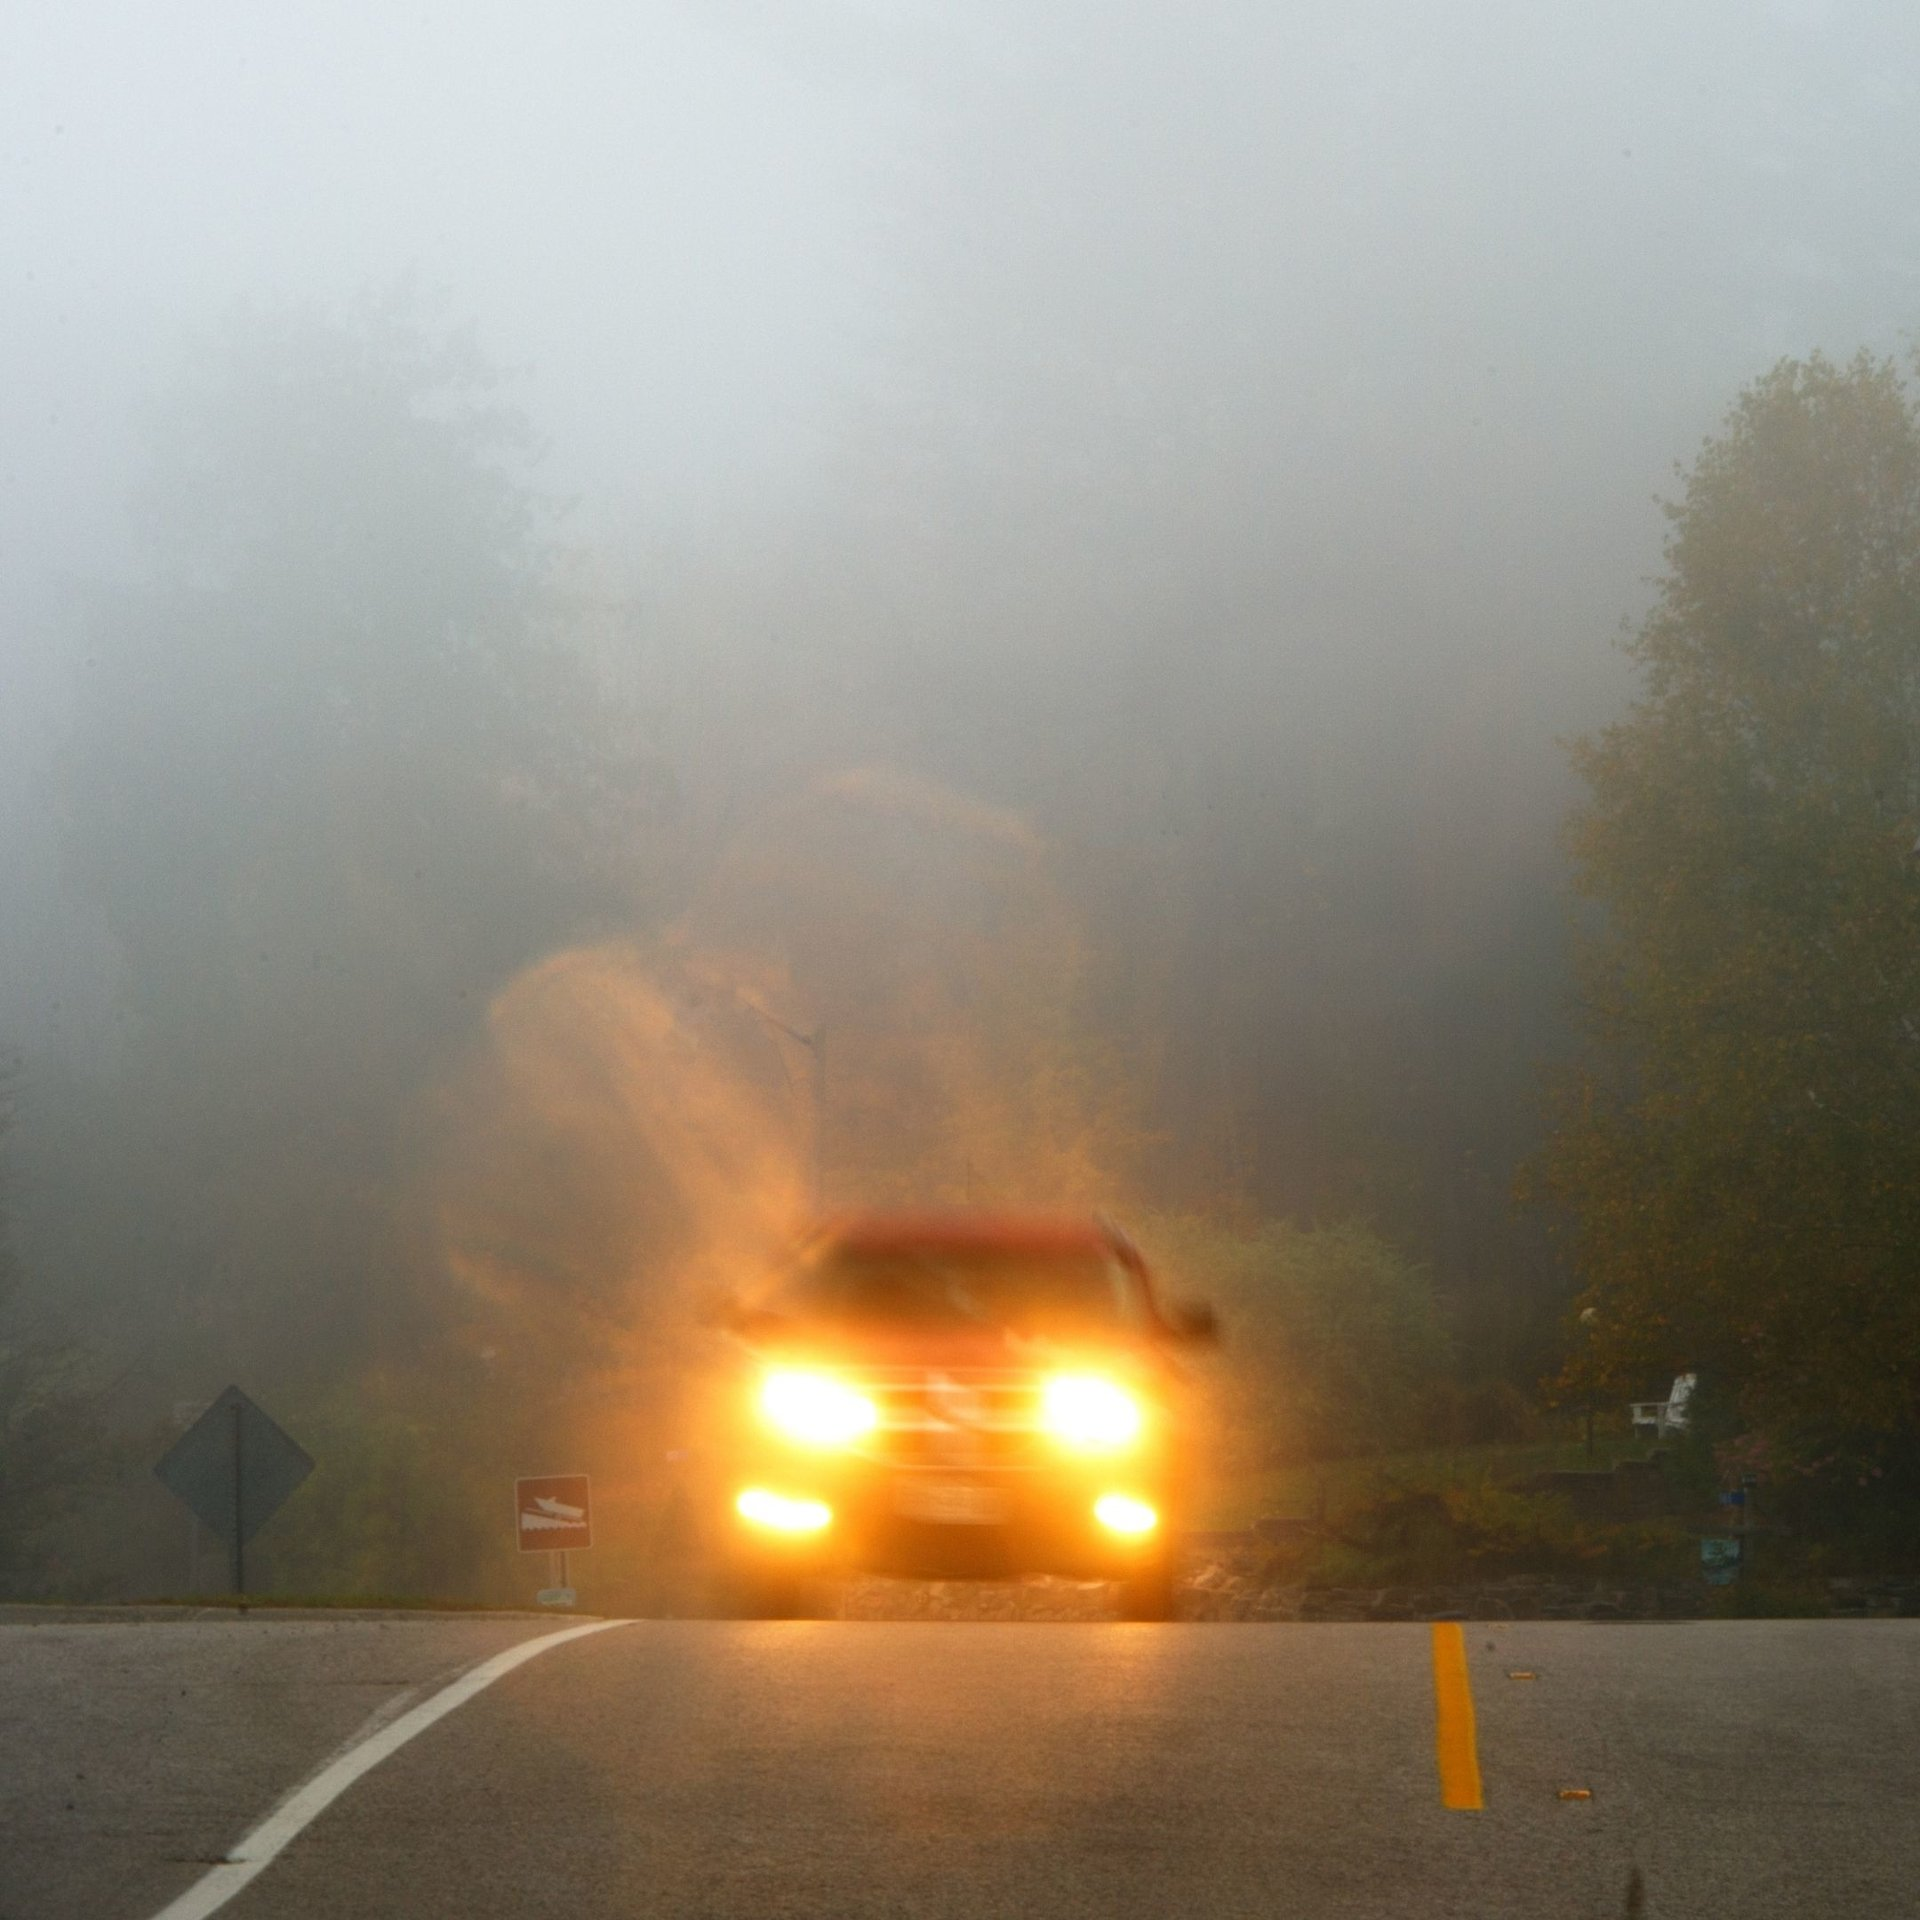 Car headlights and bulbs are needed to be seen in dark, foggy conditions